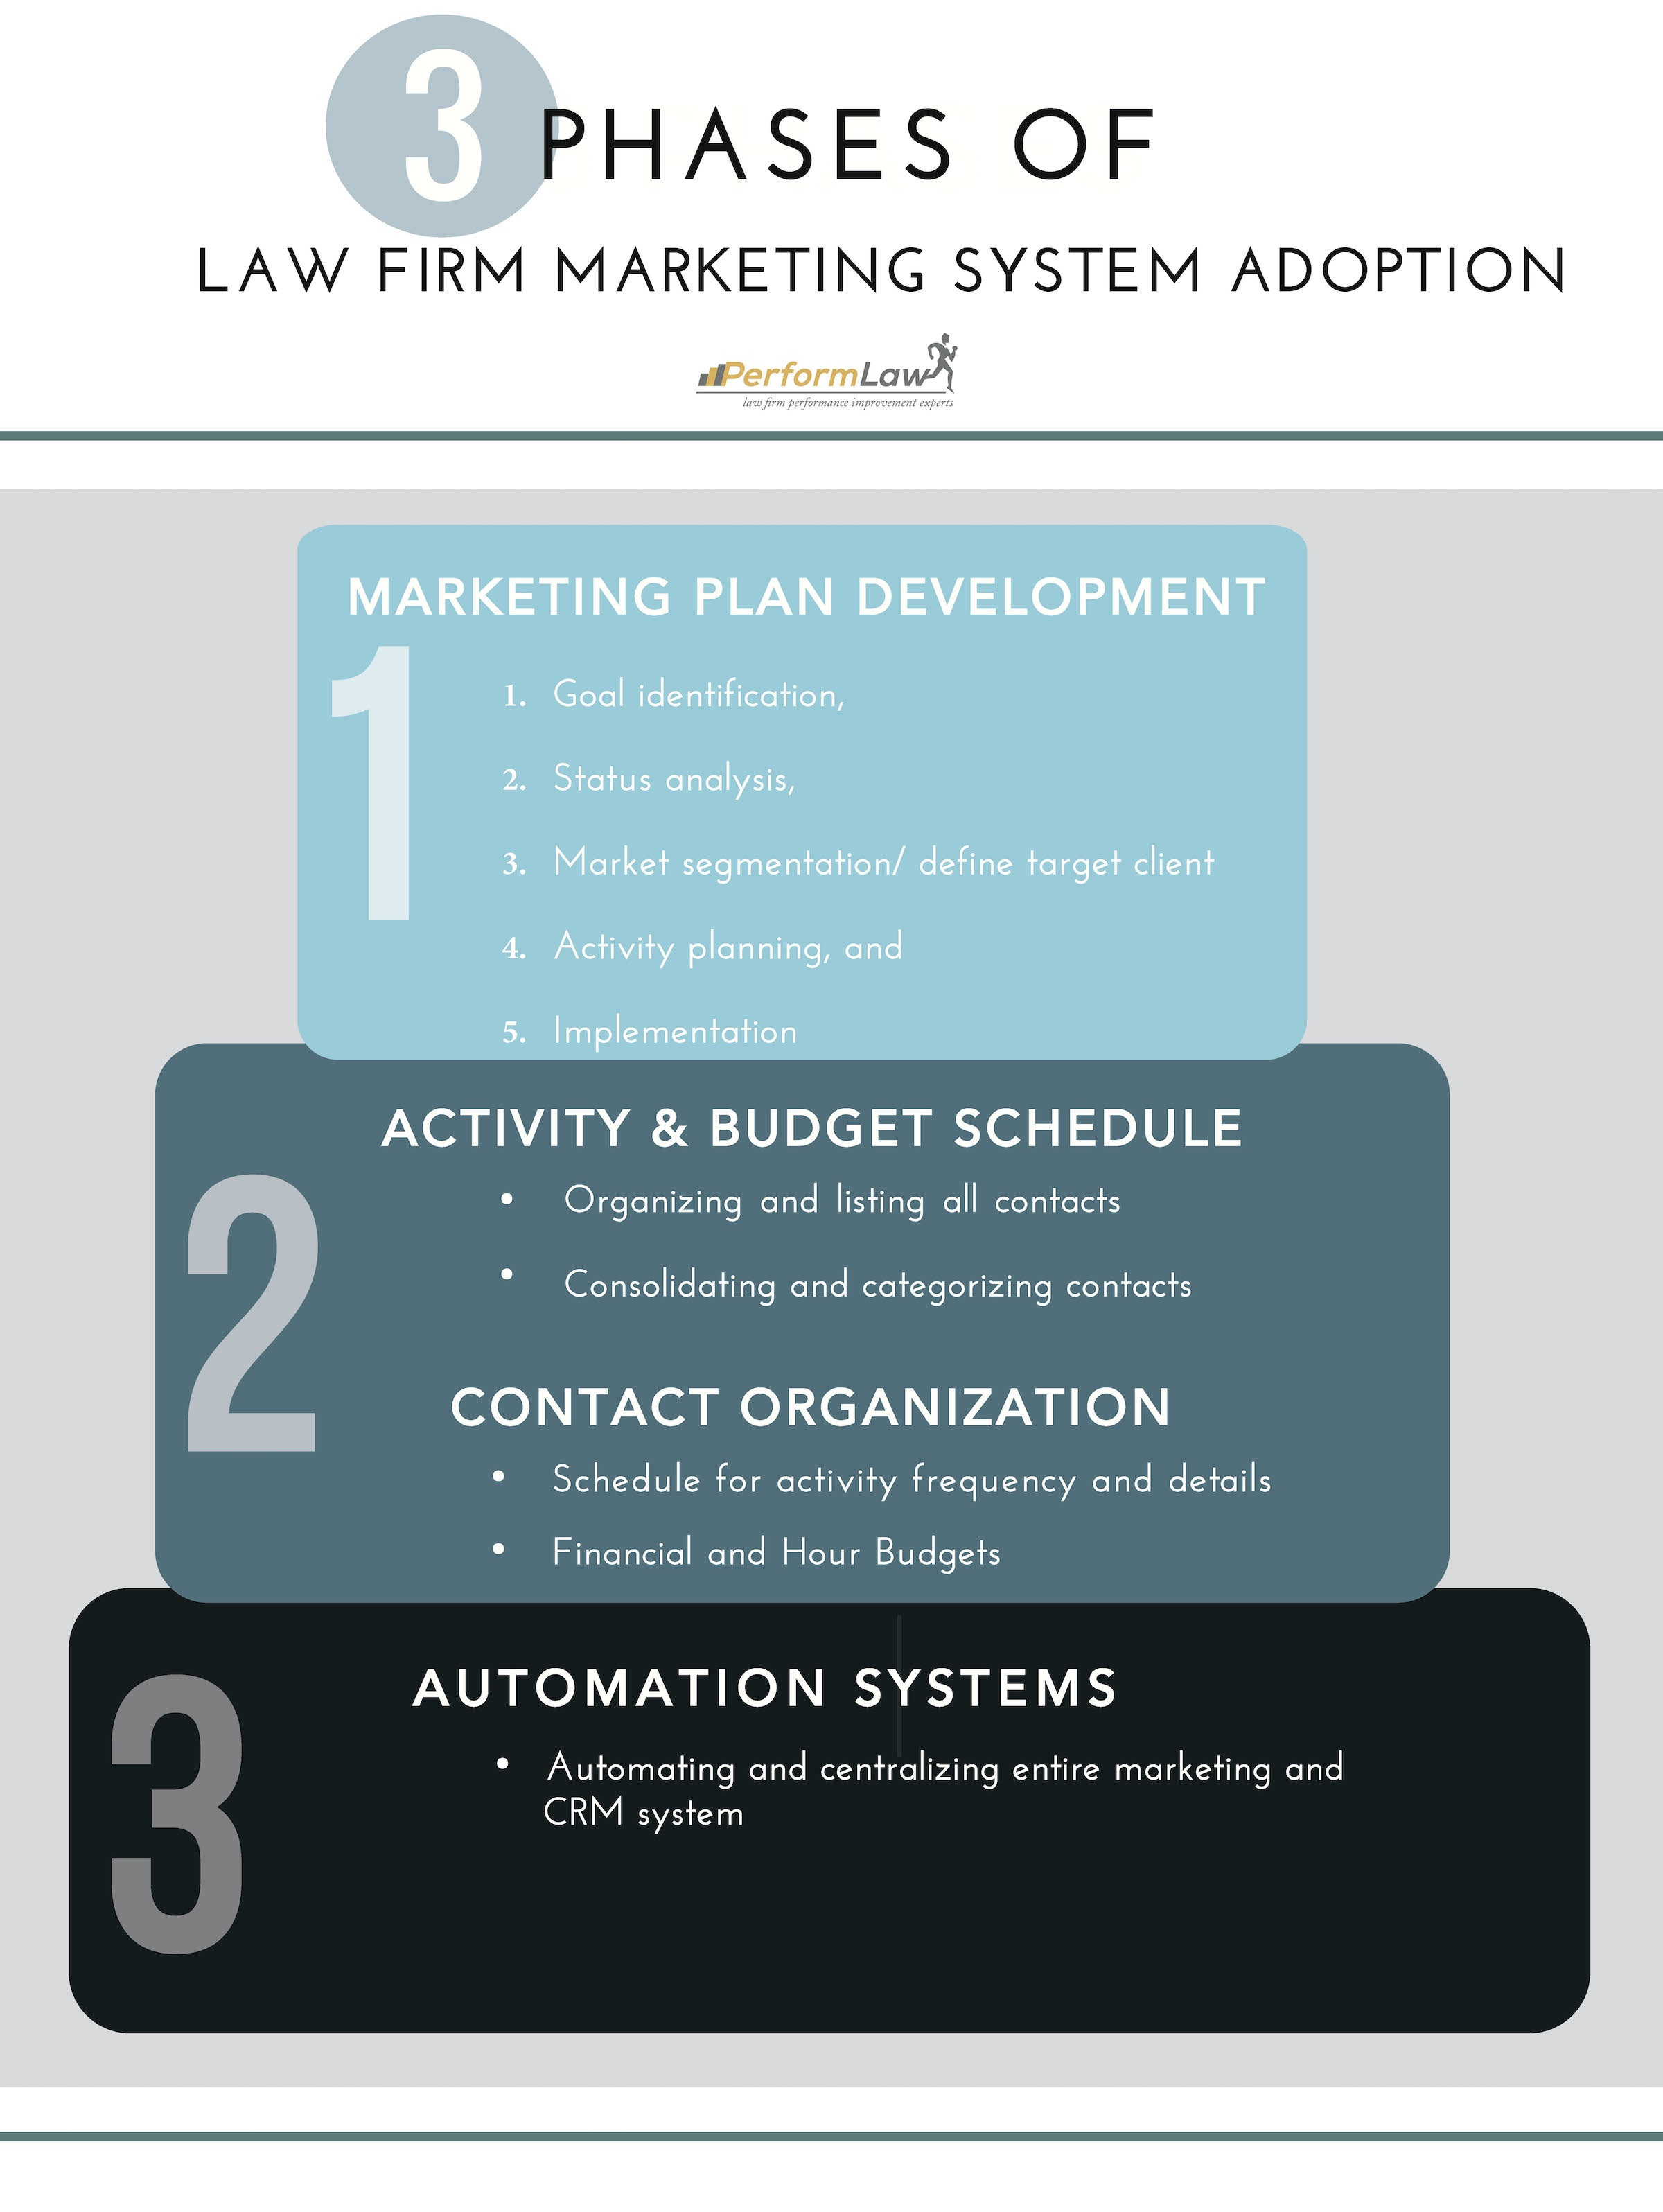 3 Phases of Law Firm Marketing System Adoption